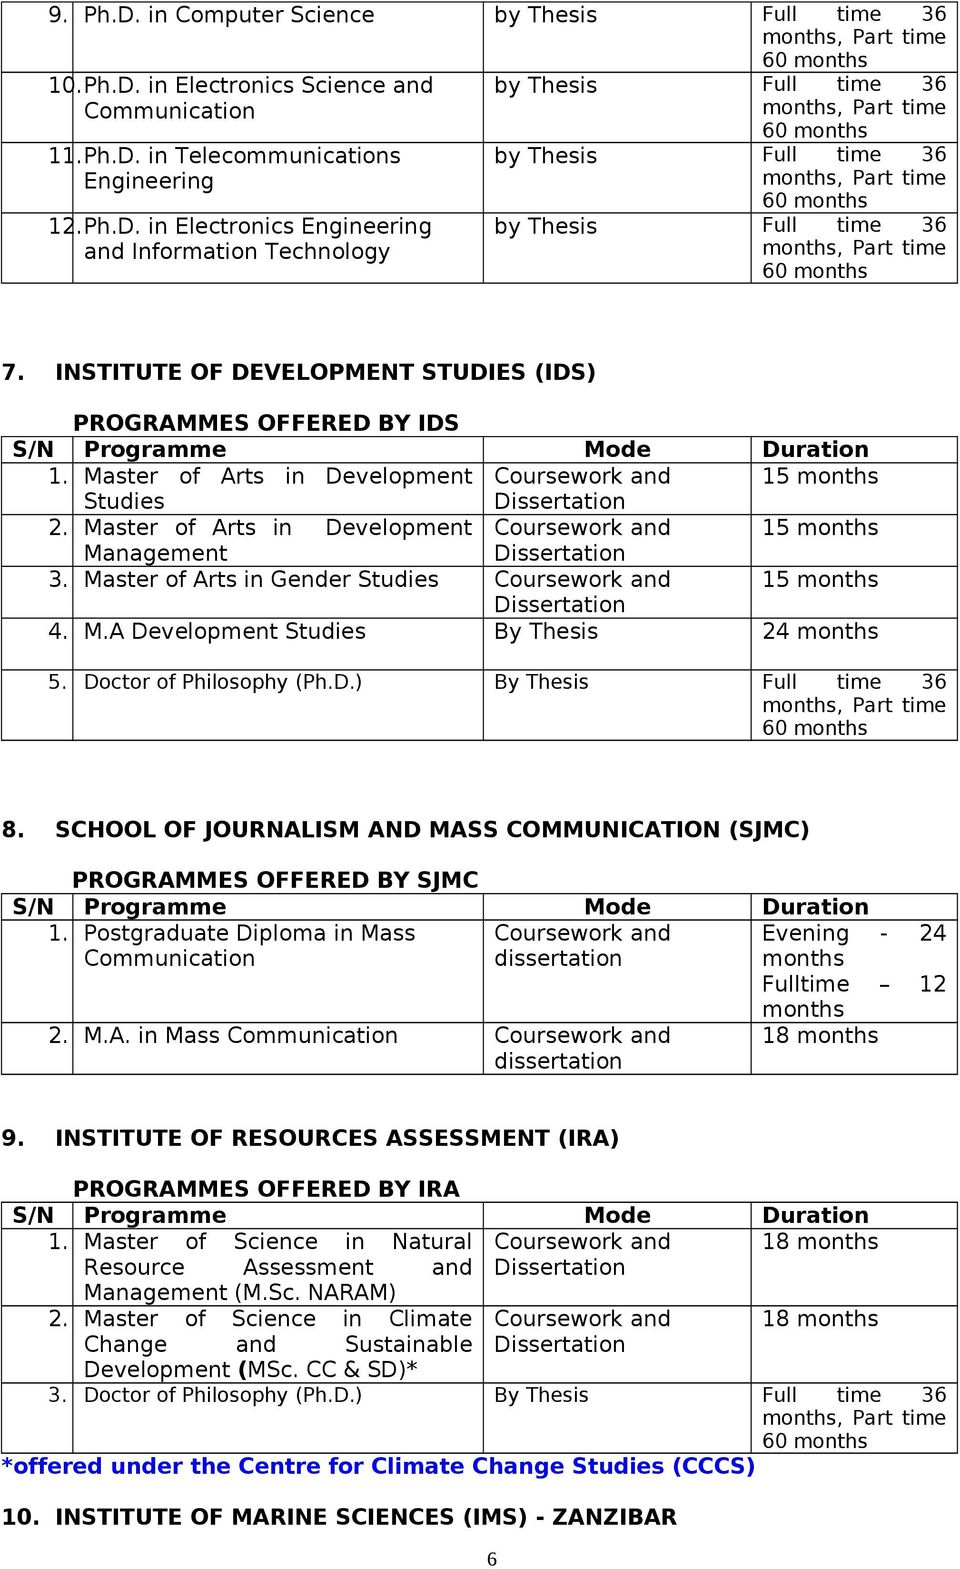 Doctor of Philosophy (Ph.D.) By Thesis Full time 36, Part time 60 8. SCHOOL OF JOURNALISM AND MASS COMMUNICATION (SJMC) PROGRAMMES OFFERED BY SJMC 1.